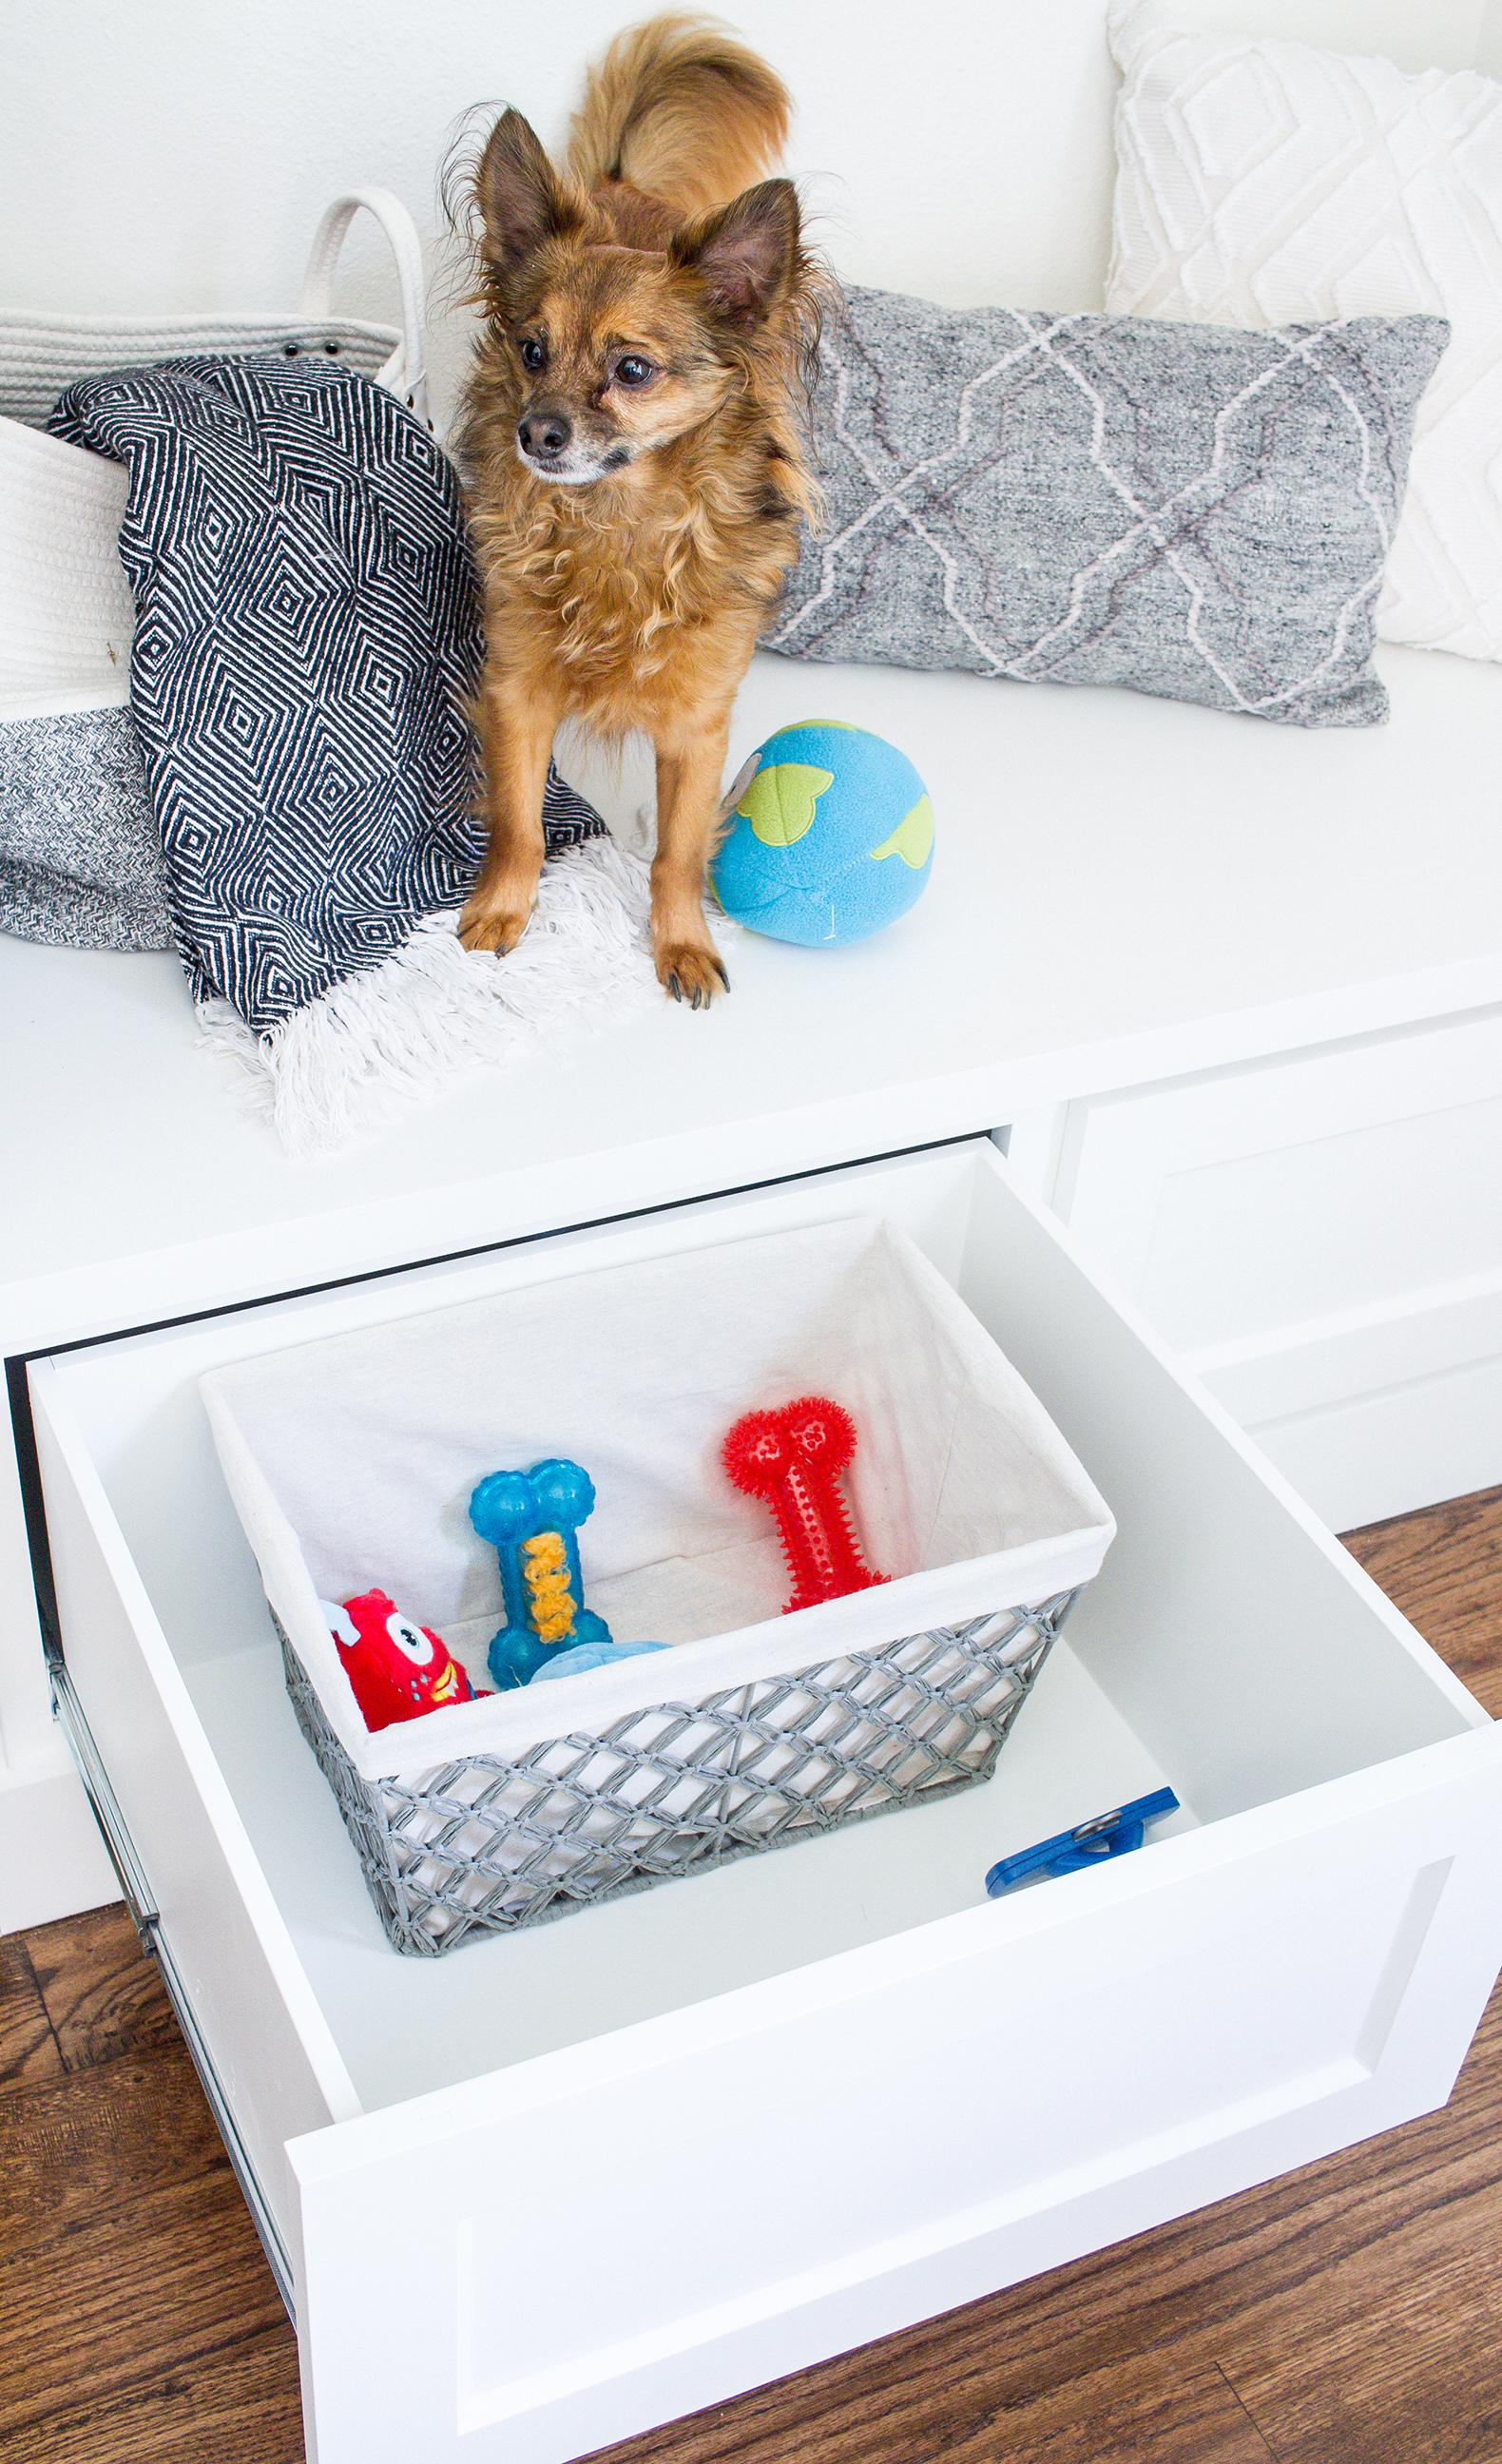 Dogs and Decor 10.jpg